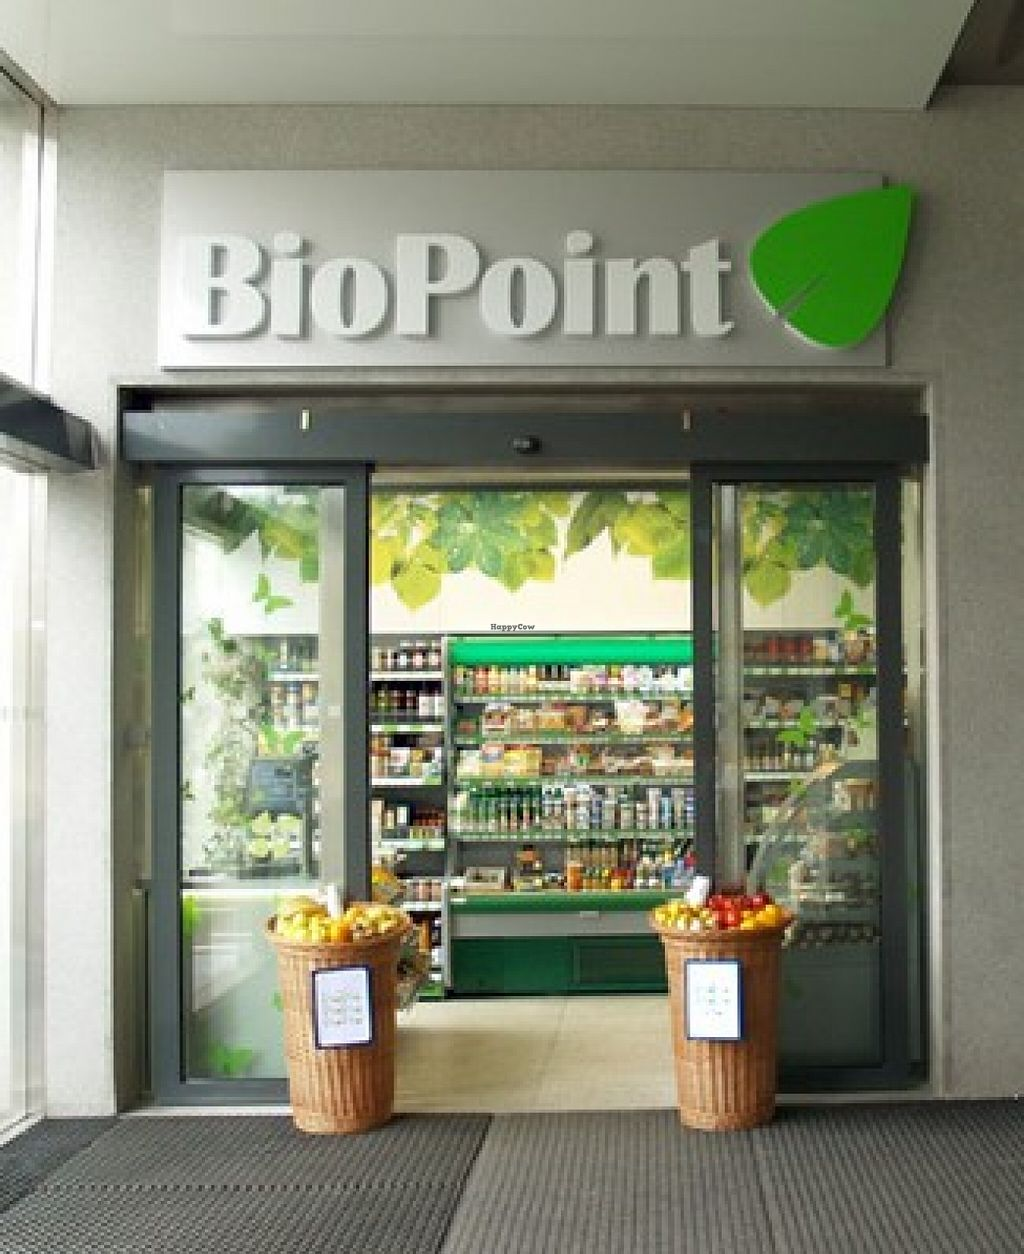 """Photo of BioPoint - Praha UVN  by <a href=""""/members/profile/community"""">community</a> <br/>BioPoint - Praha UVN <br/> March 10, 2016  - <a href='/contact/abuse/image/70477/139539'>Report</a>"""